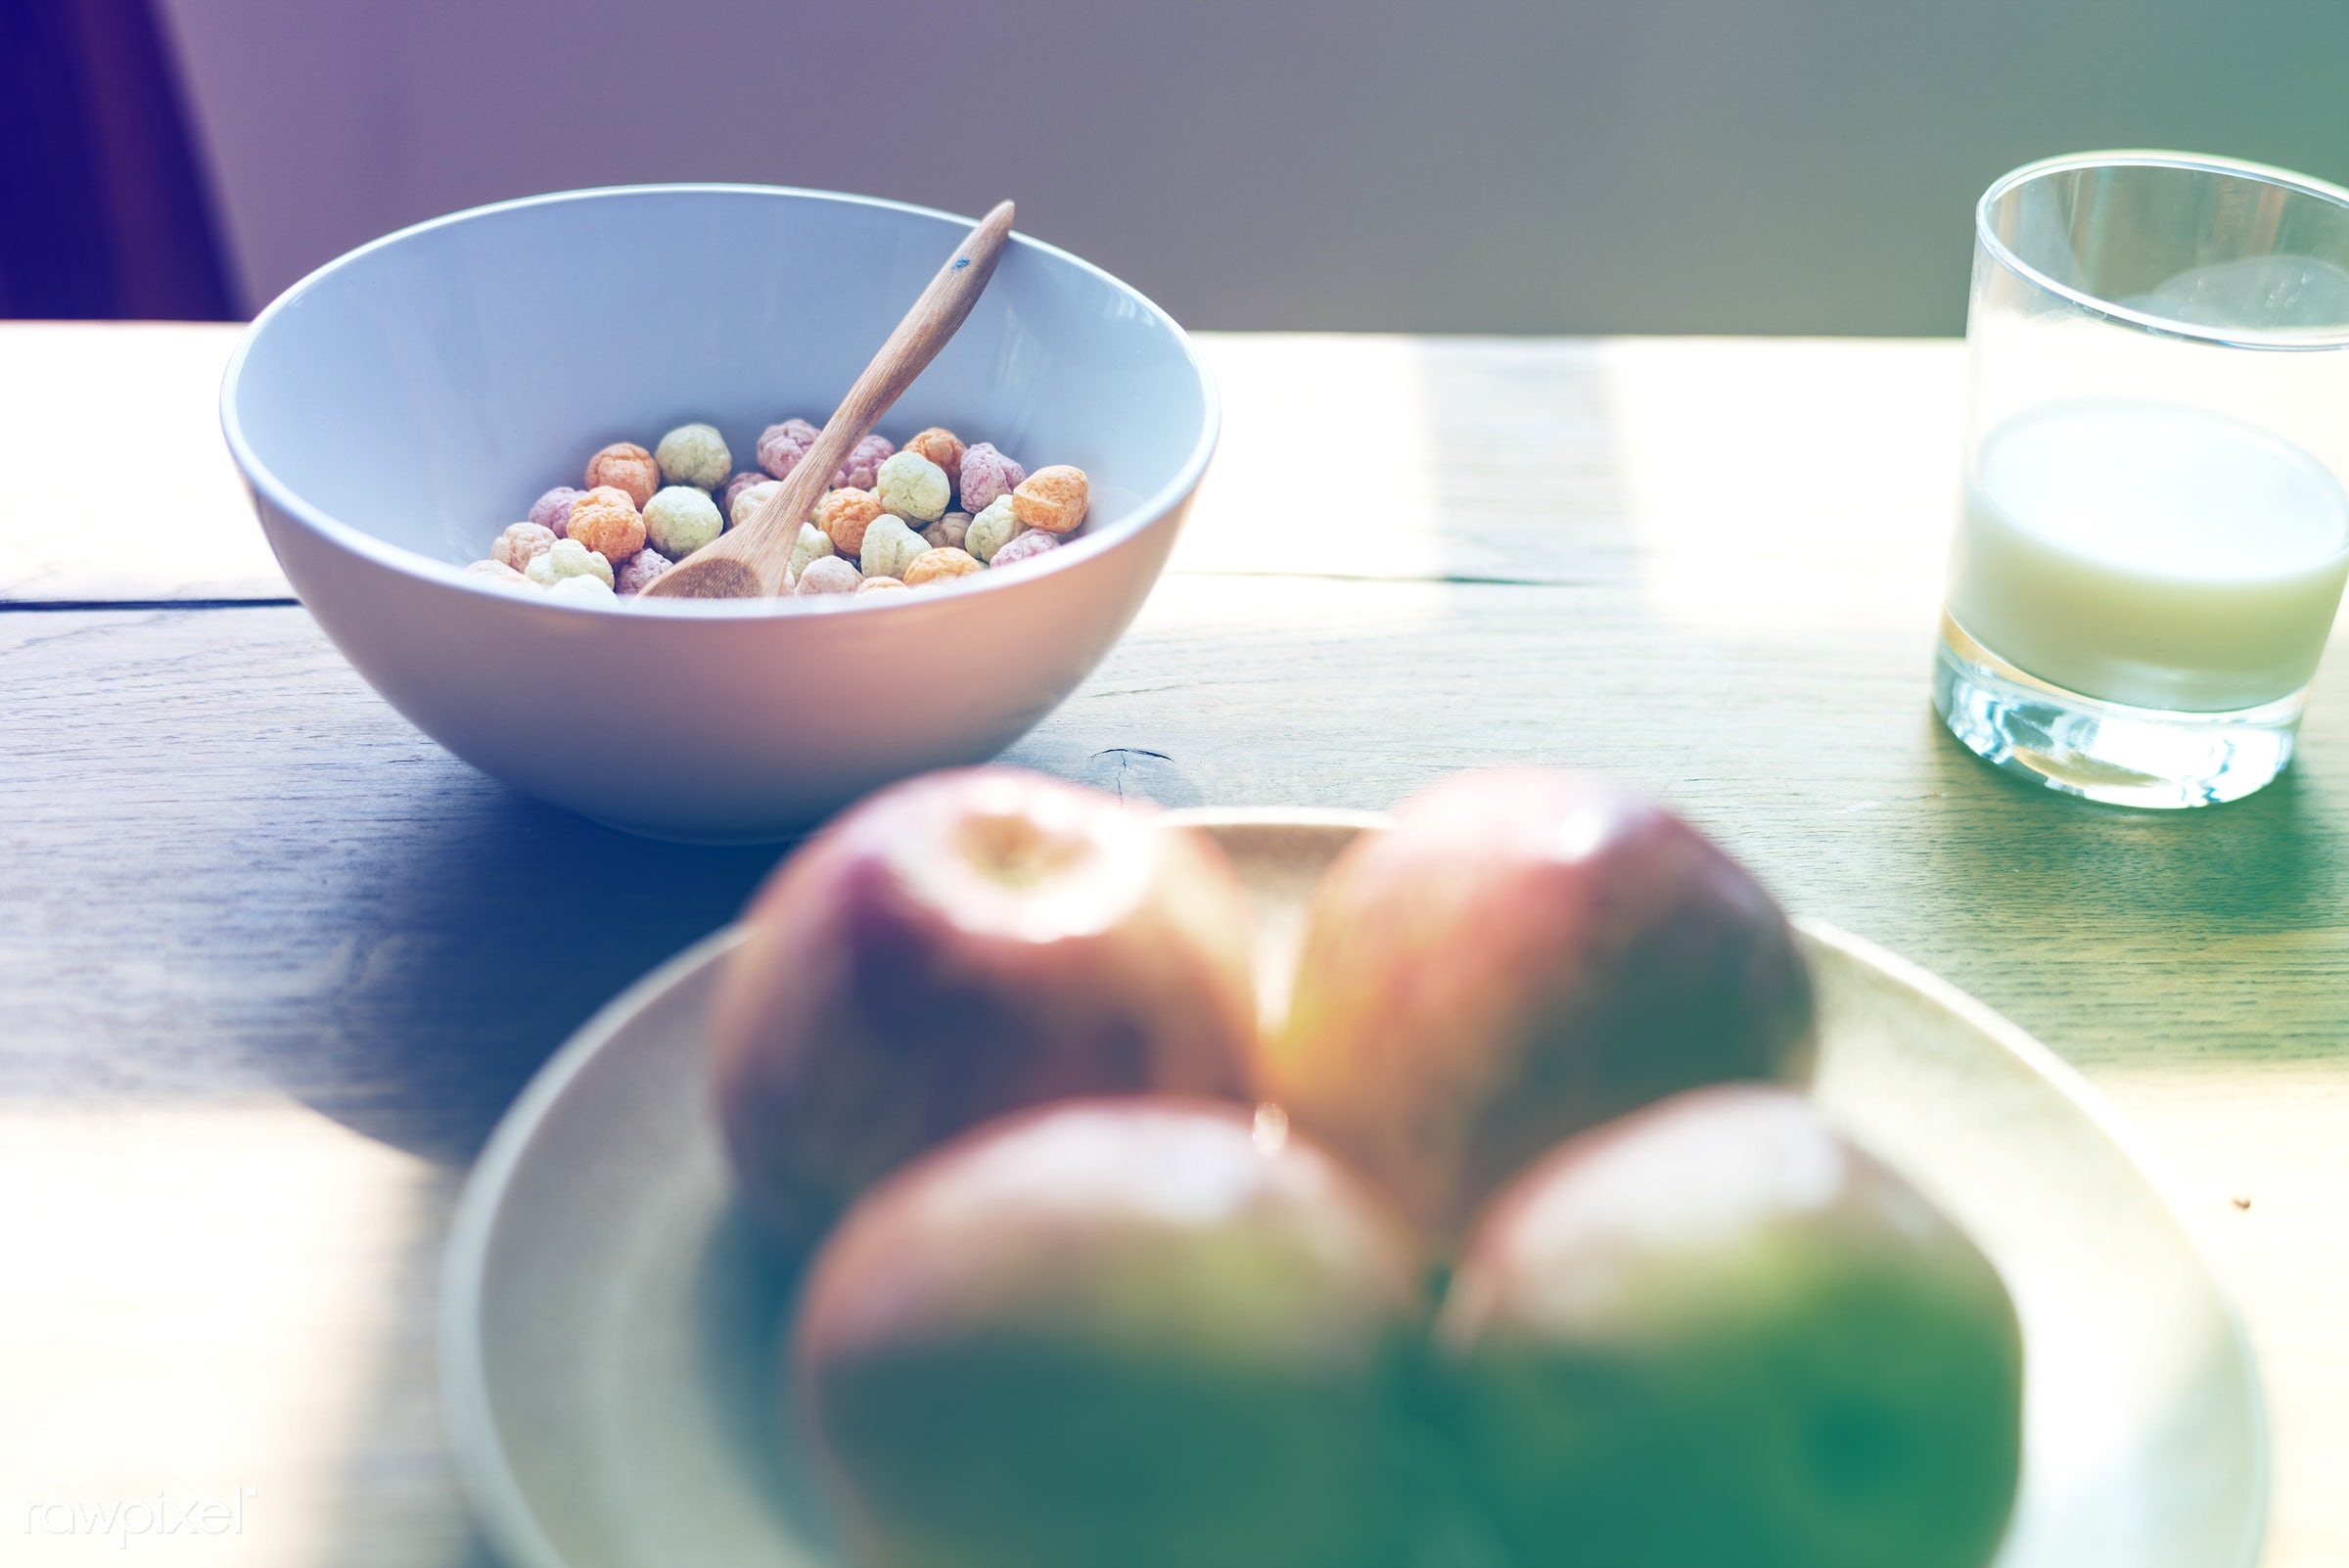 apples, bowl, breakfast, cereal, delicious, diet, dietary, dietetic, dining, edible, filter, food, fresh, fruit, glass,...